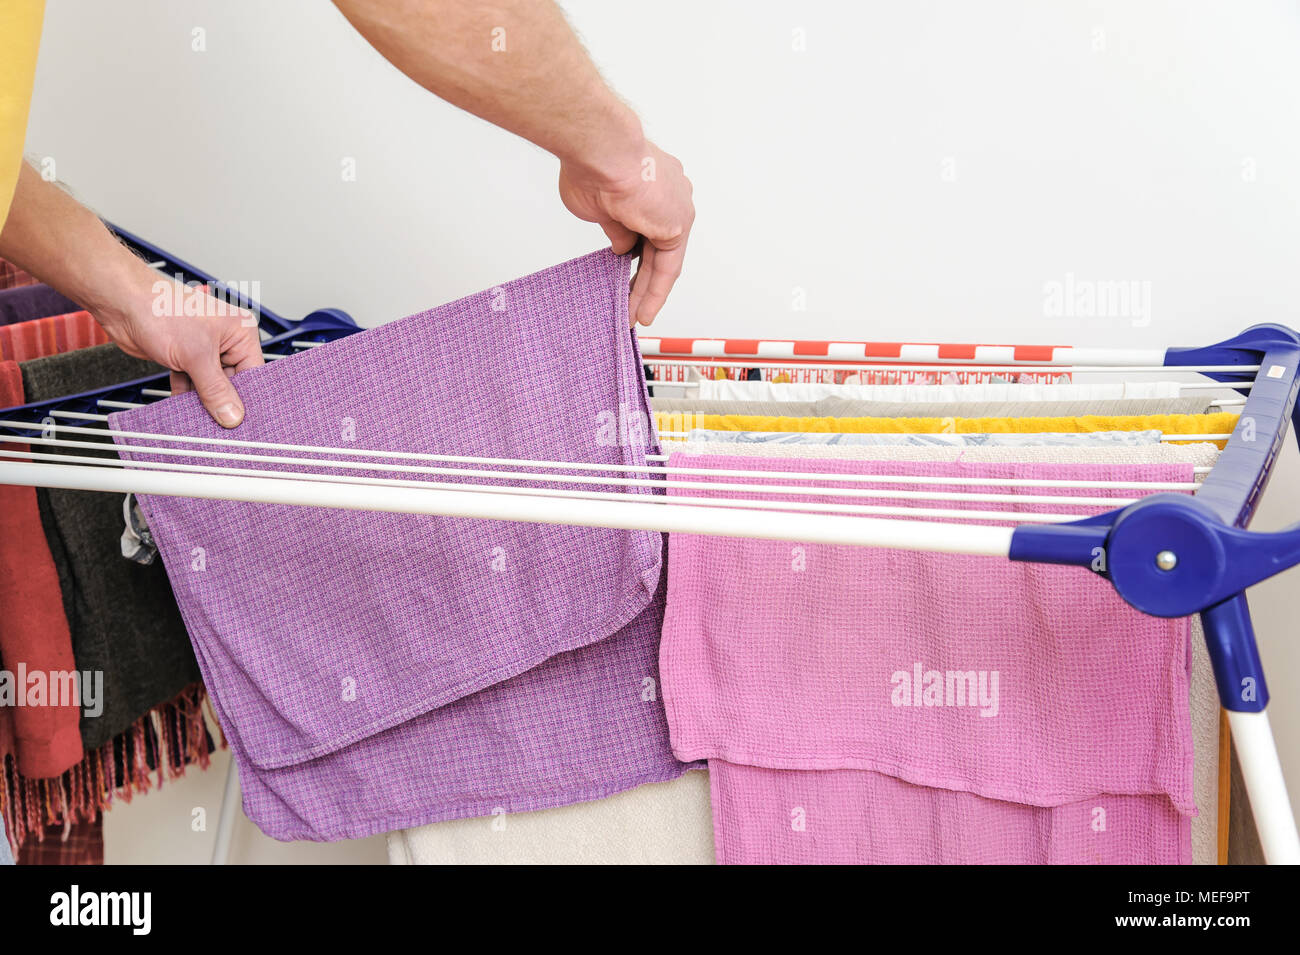 A man takes off towels from drying rack clothes. - Stock Image